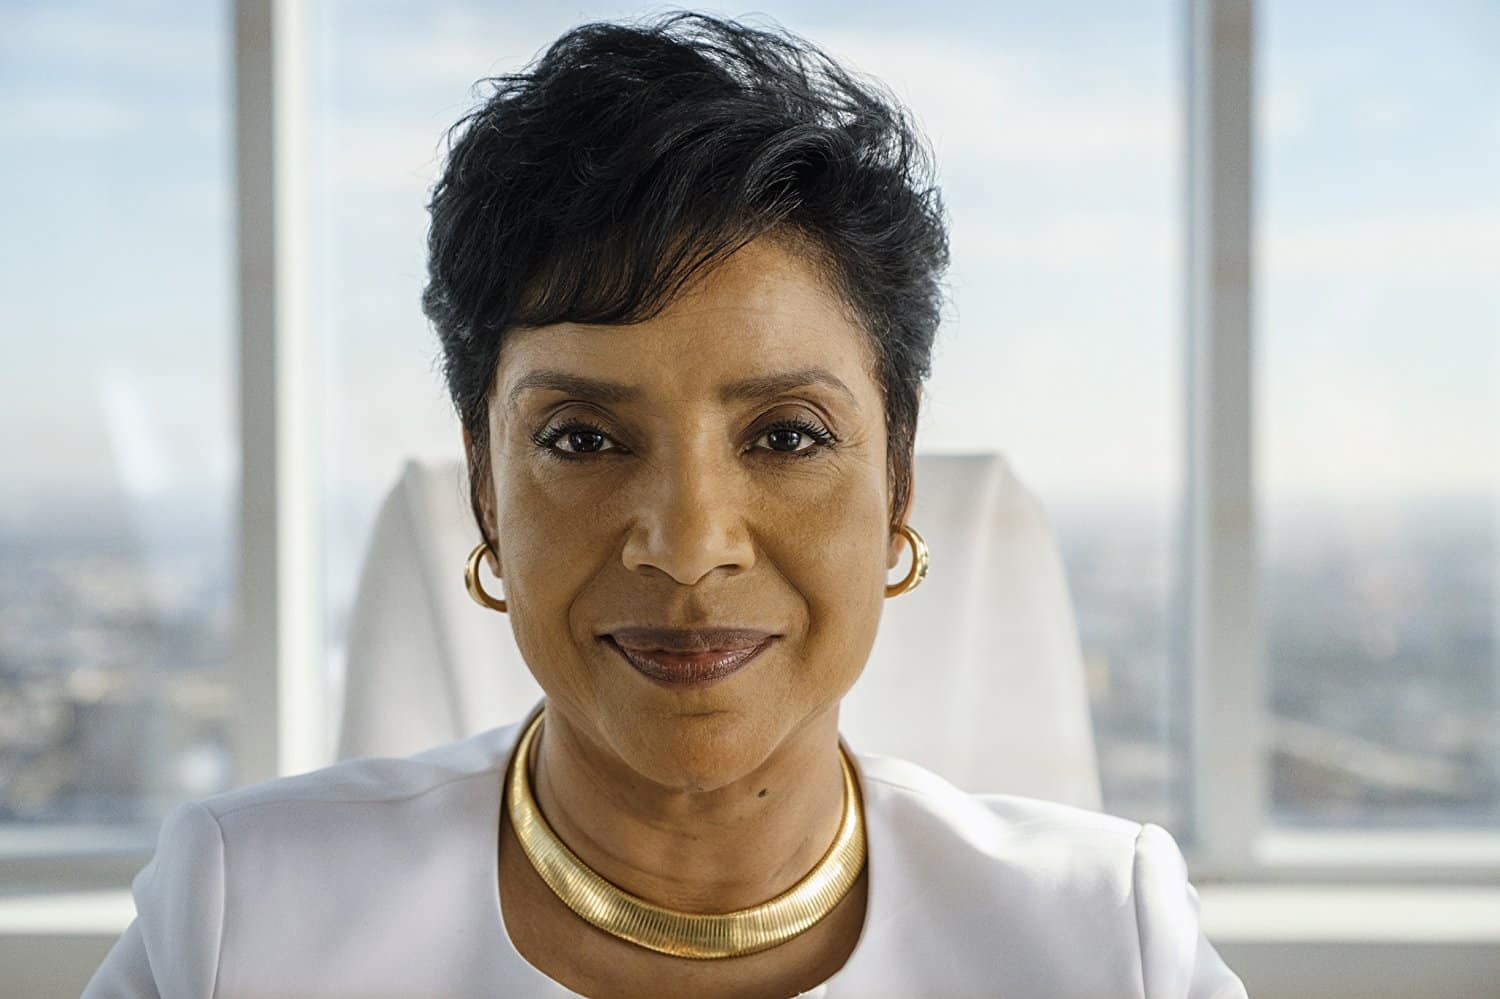 This Is Us Season 3: Cosby Show's Phylicia Rashad Cast as Beth's Mom